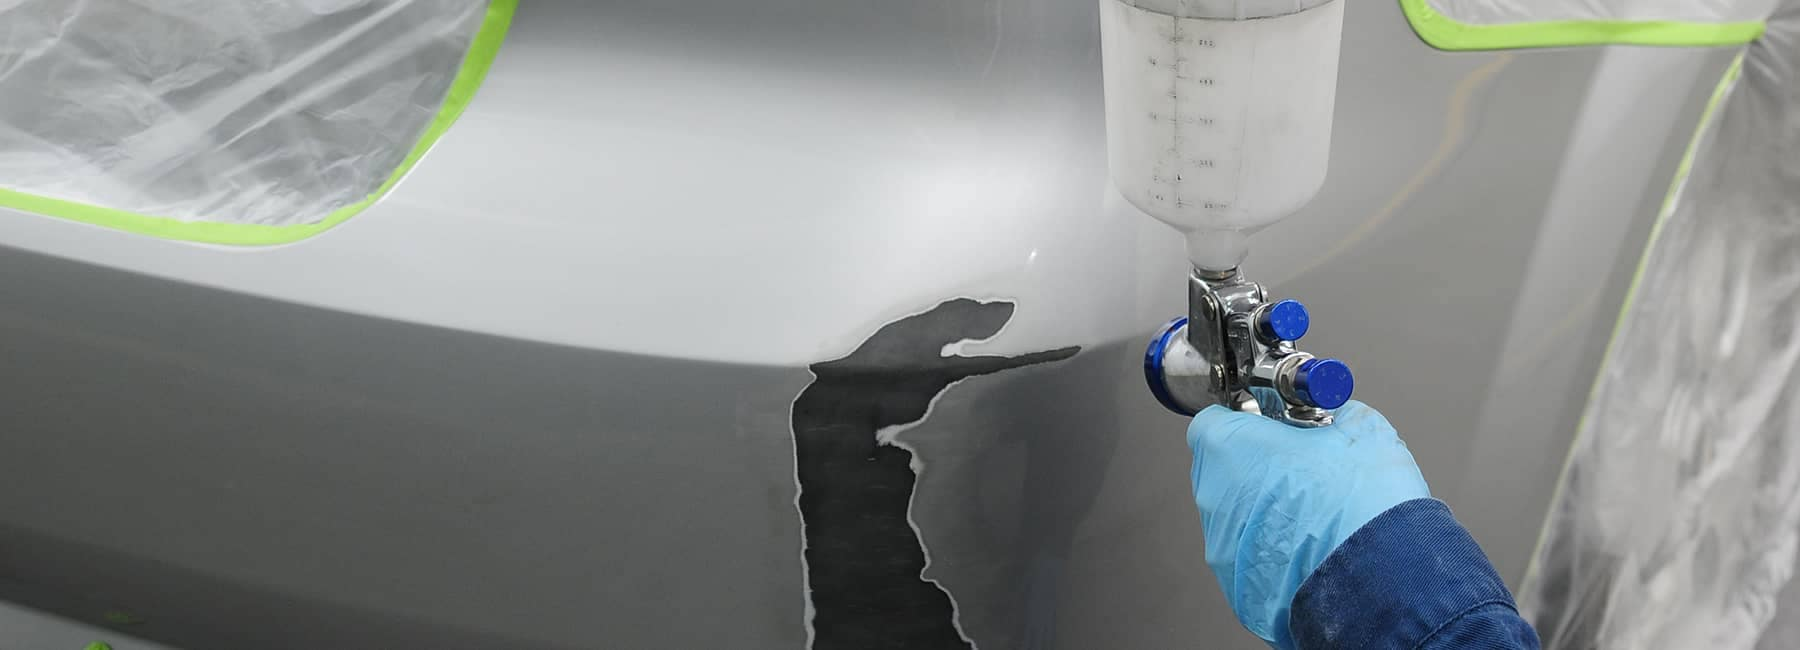 Painting bumper